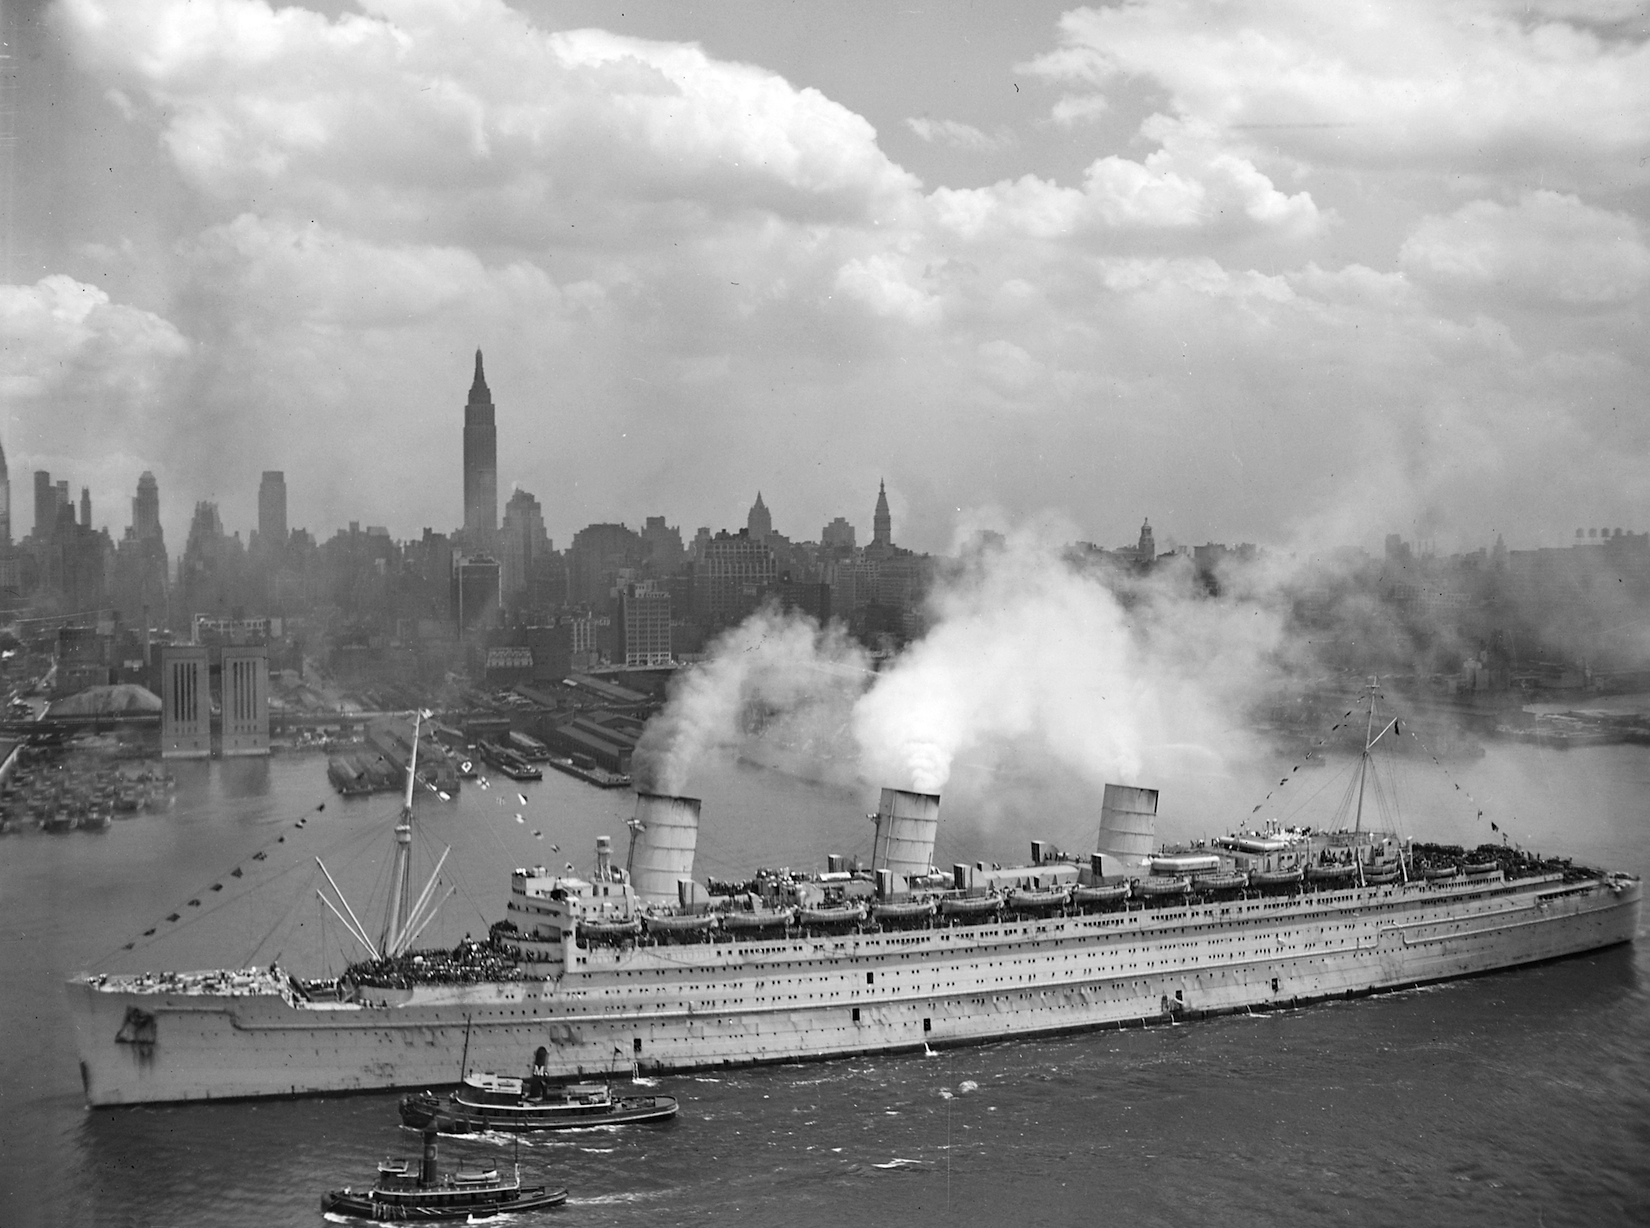 RMS QUEEN MARY ARRIVING AT NYC WITH RETURNING US TROOPS, JUNE 1945 - US NAVY